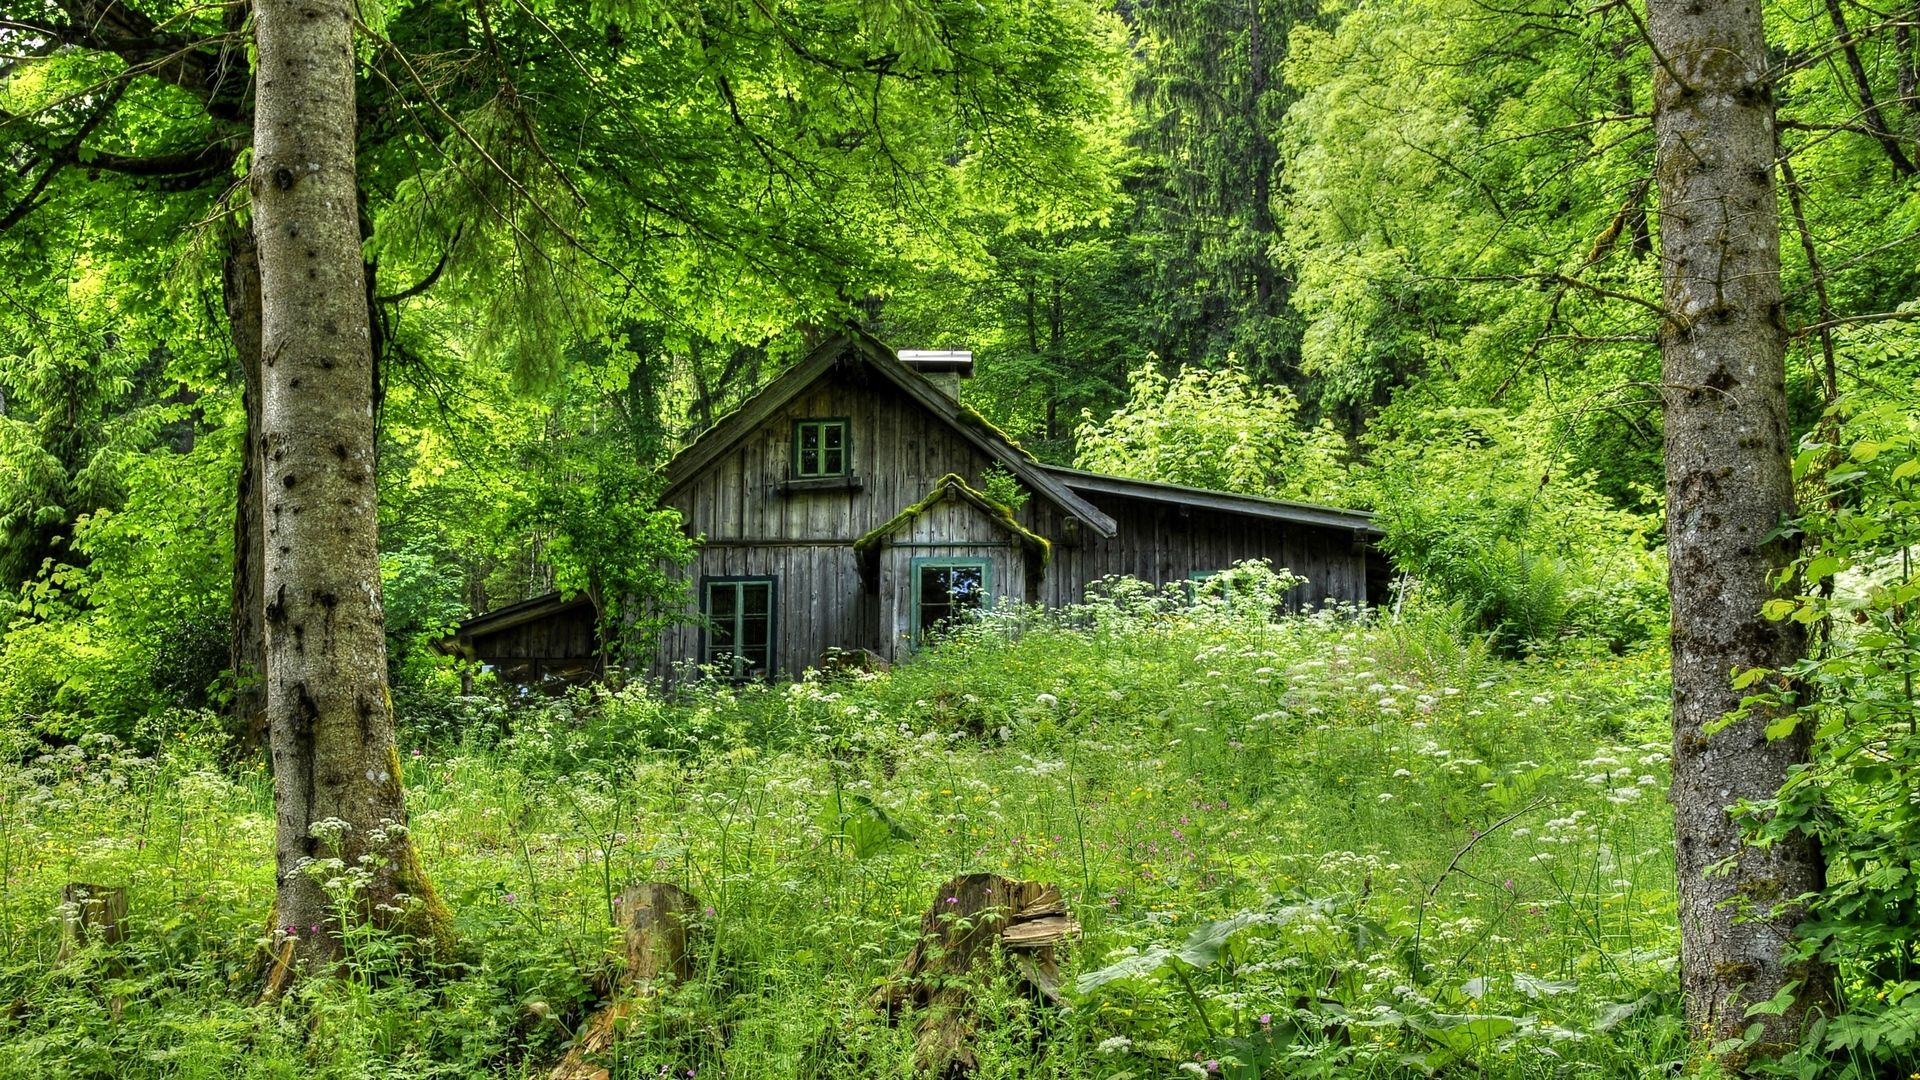 Cabin Deep In The Woods Hd Desktop Background Wallpapers Hd Free Forest House House In The Woods Cabin